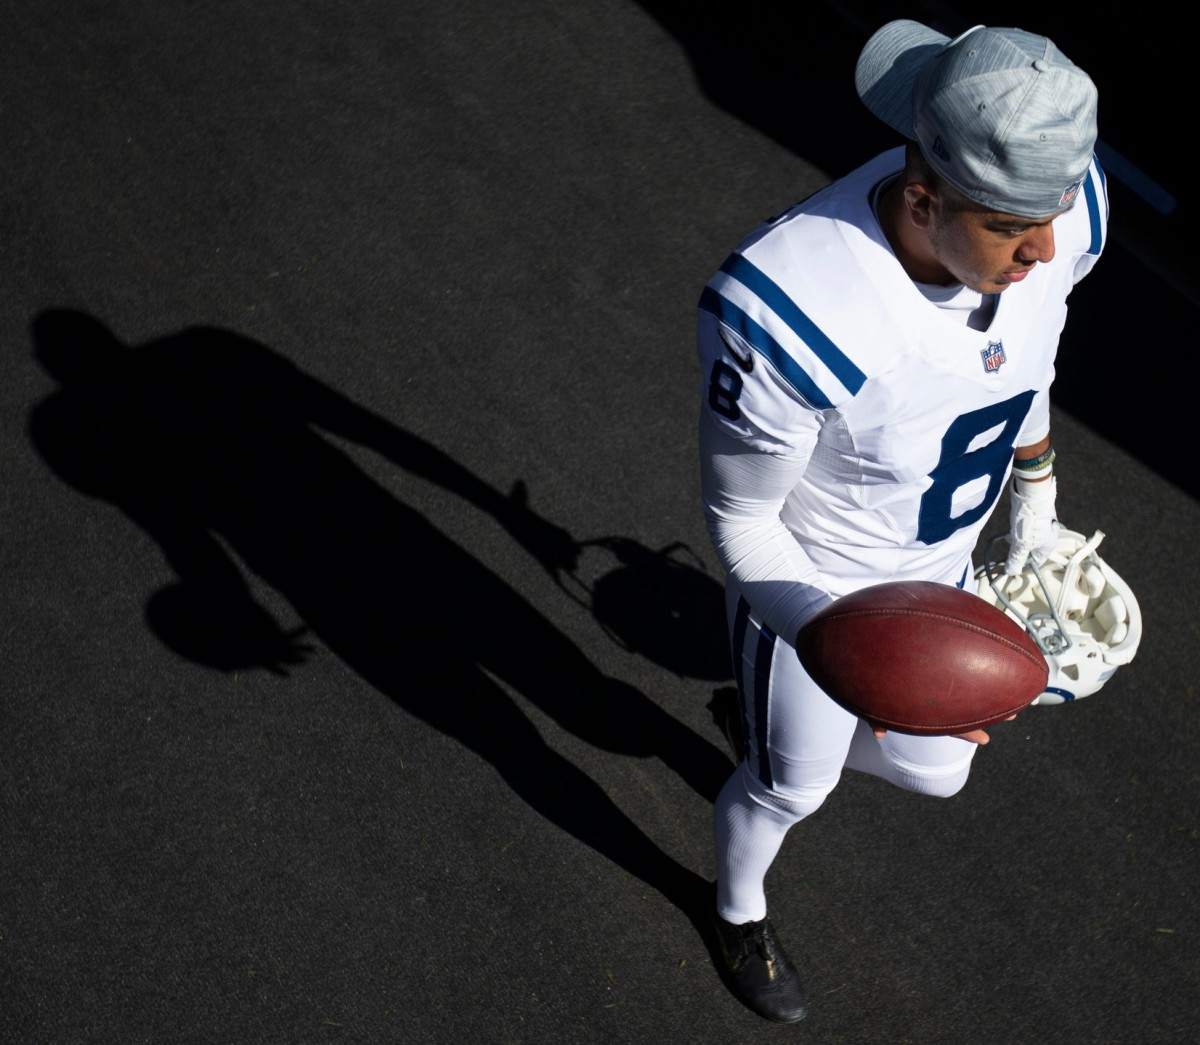 Indianapolis Colts punter Rigoberto Sanchez, shown before an October road game, underwent successful surgery Tuesday to remove a cancerous growth.